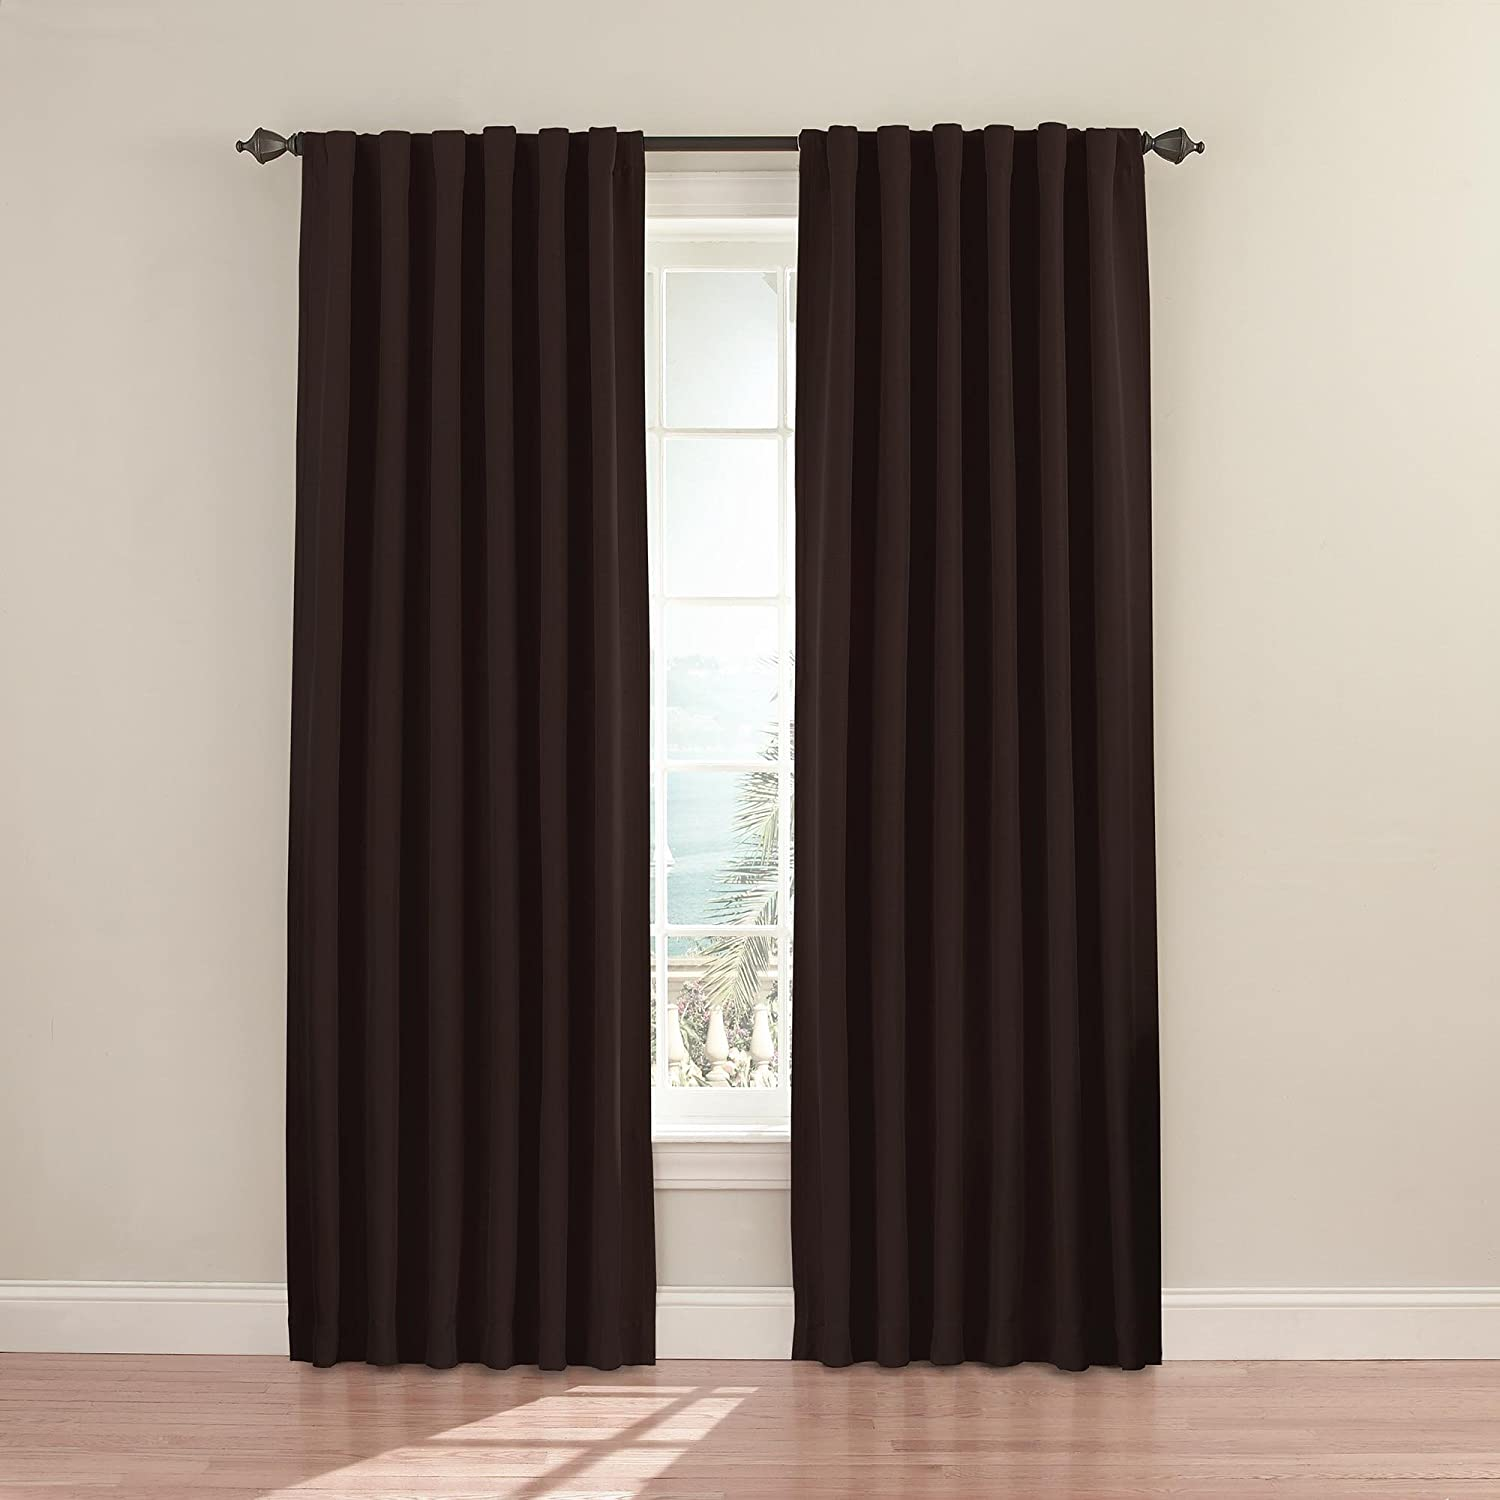 "ECLIPSE Fresno Thermal Insulated Single Panel Rod Pocket Darkening Curtains for Living Room, 52"" x 63"", Espresso"